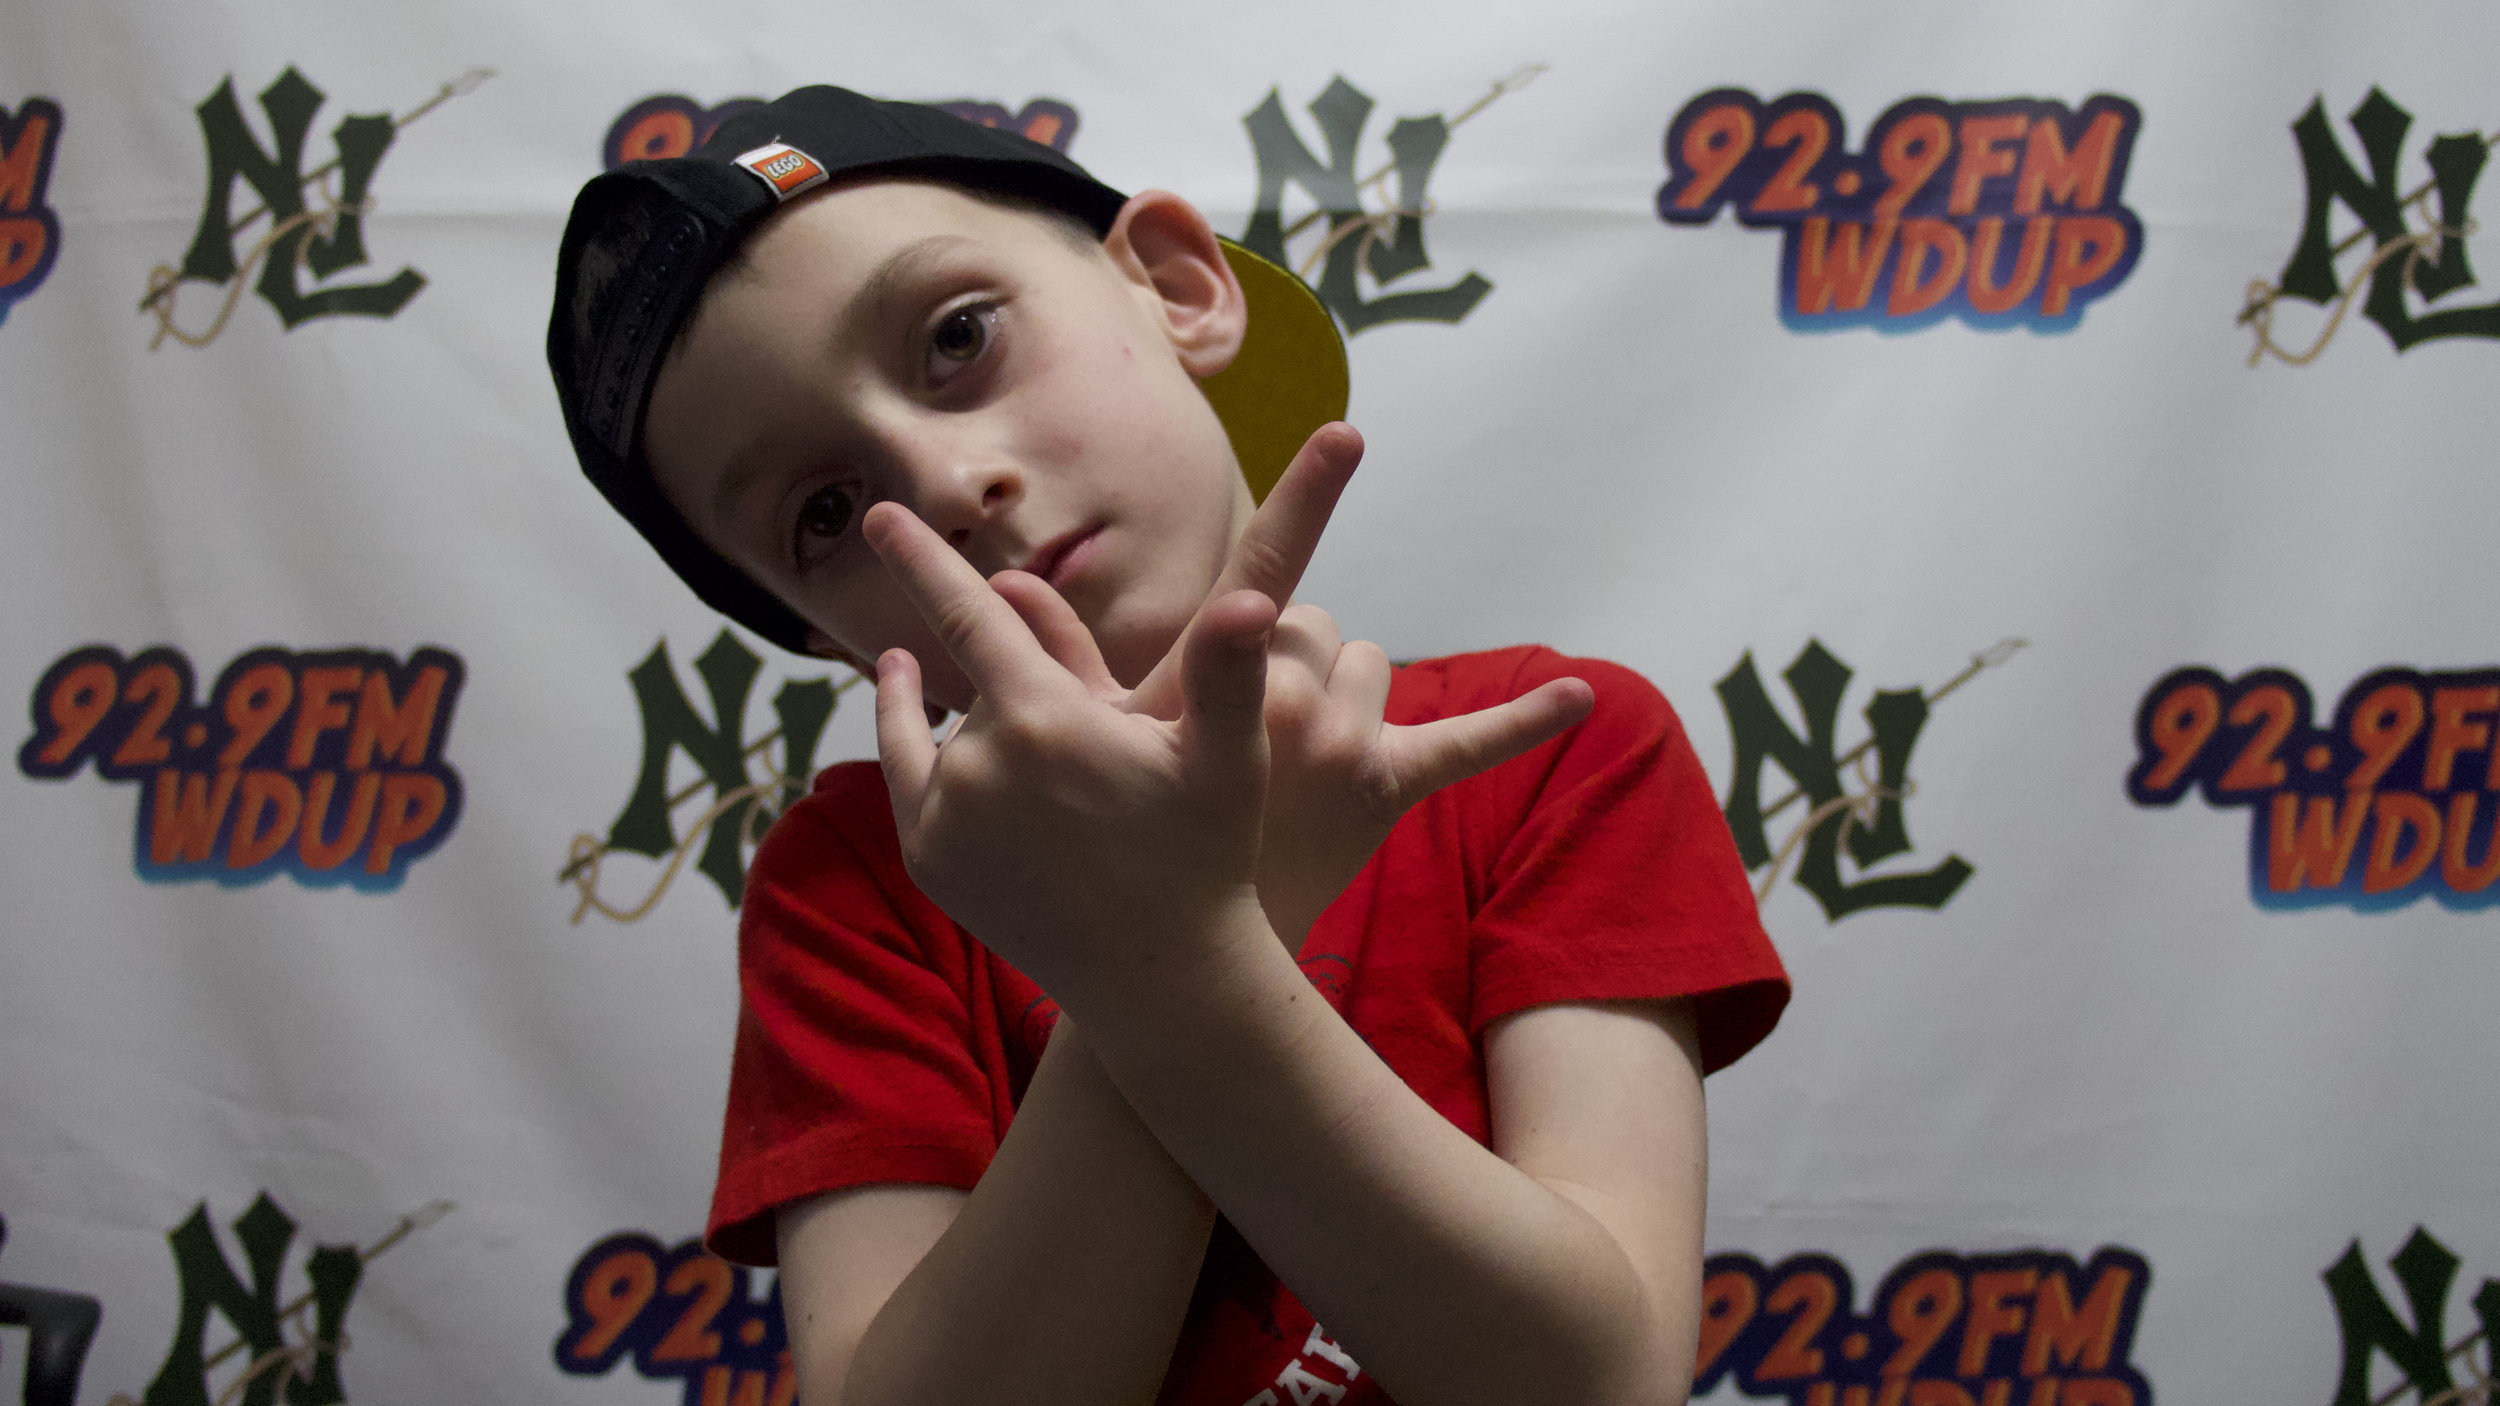 """Introducing New London, Connecticut's very own single-digit rapper, the show-stopping """"King Cay""""! This 7 year old phenom brings life to any stage & lights up every room he walks into, his energy is off the charts and performance demands a standing ovation. Wether you watch or listen to King Cay, he is sure to steal your heart and make your day! -"""